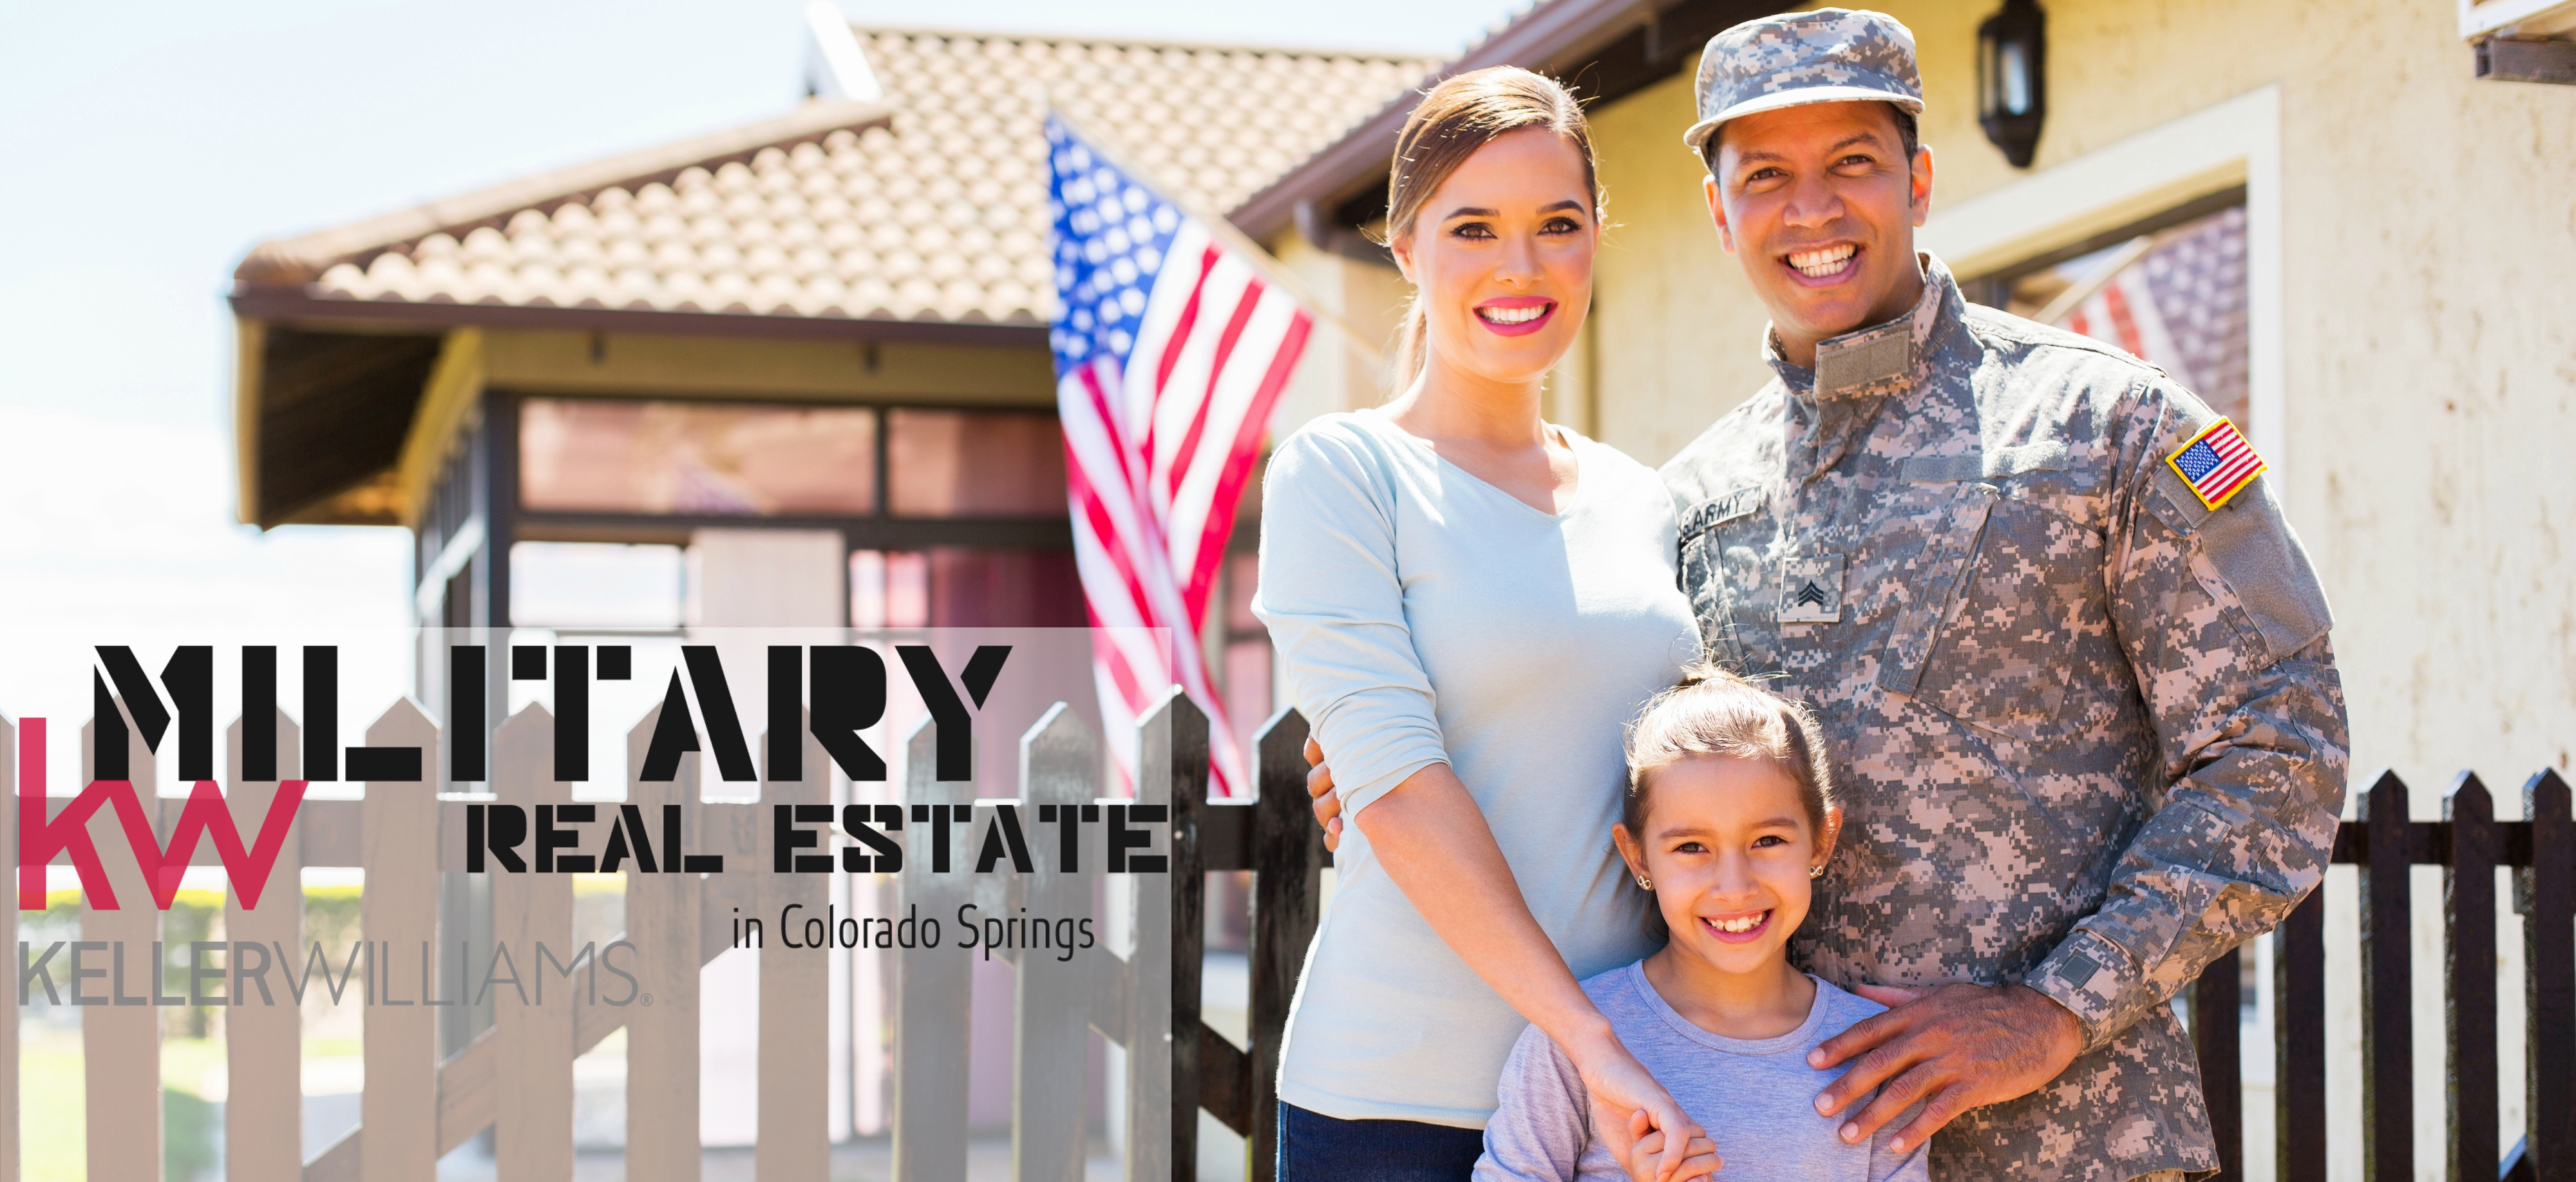 Military Real Estate in Colorado Springs